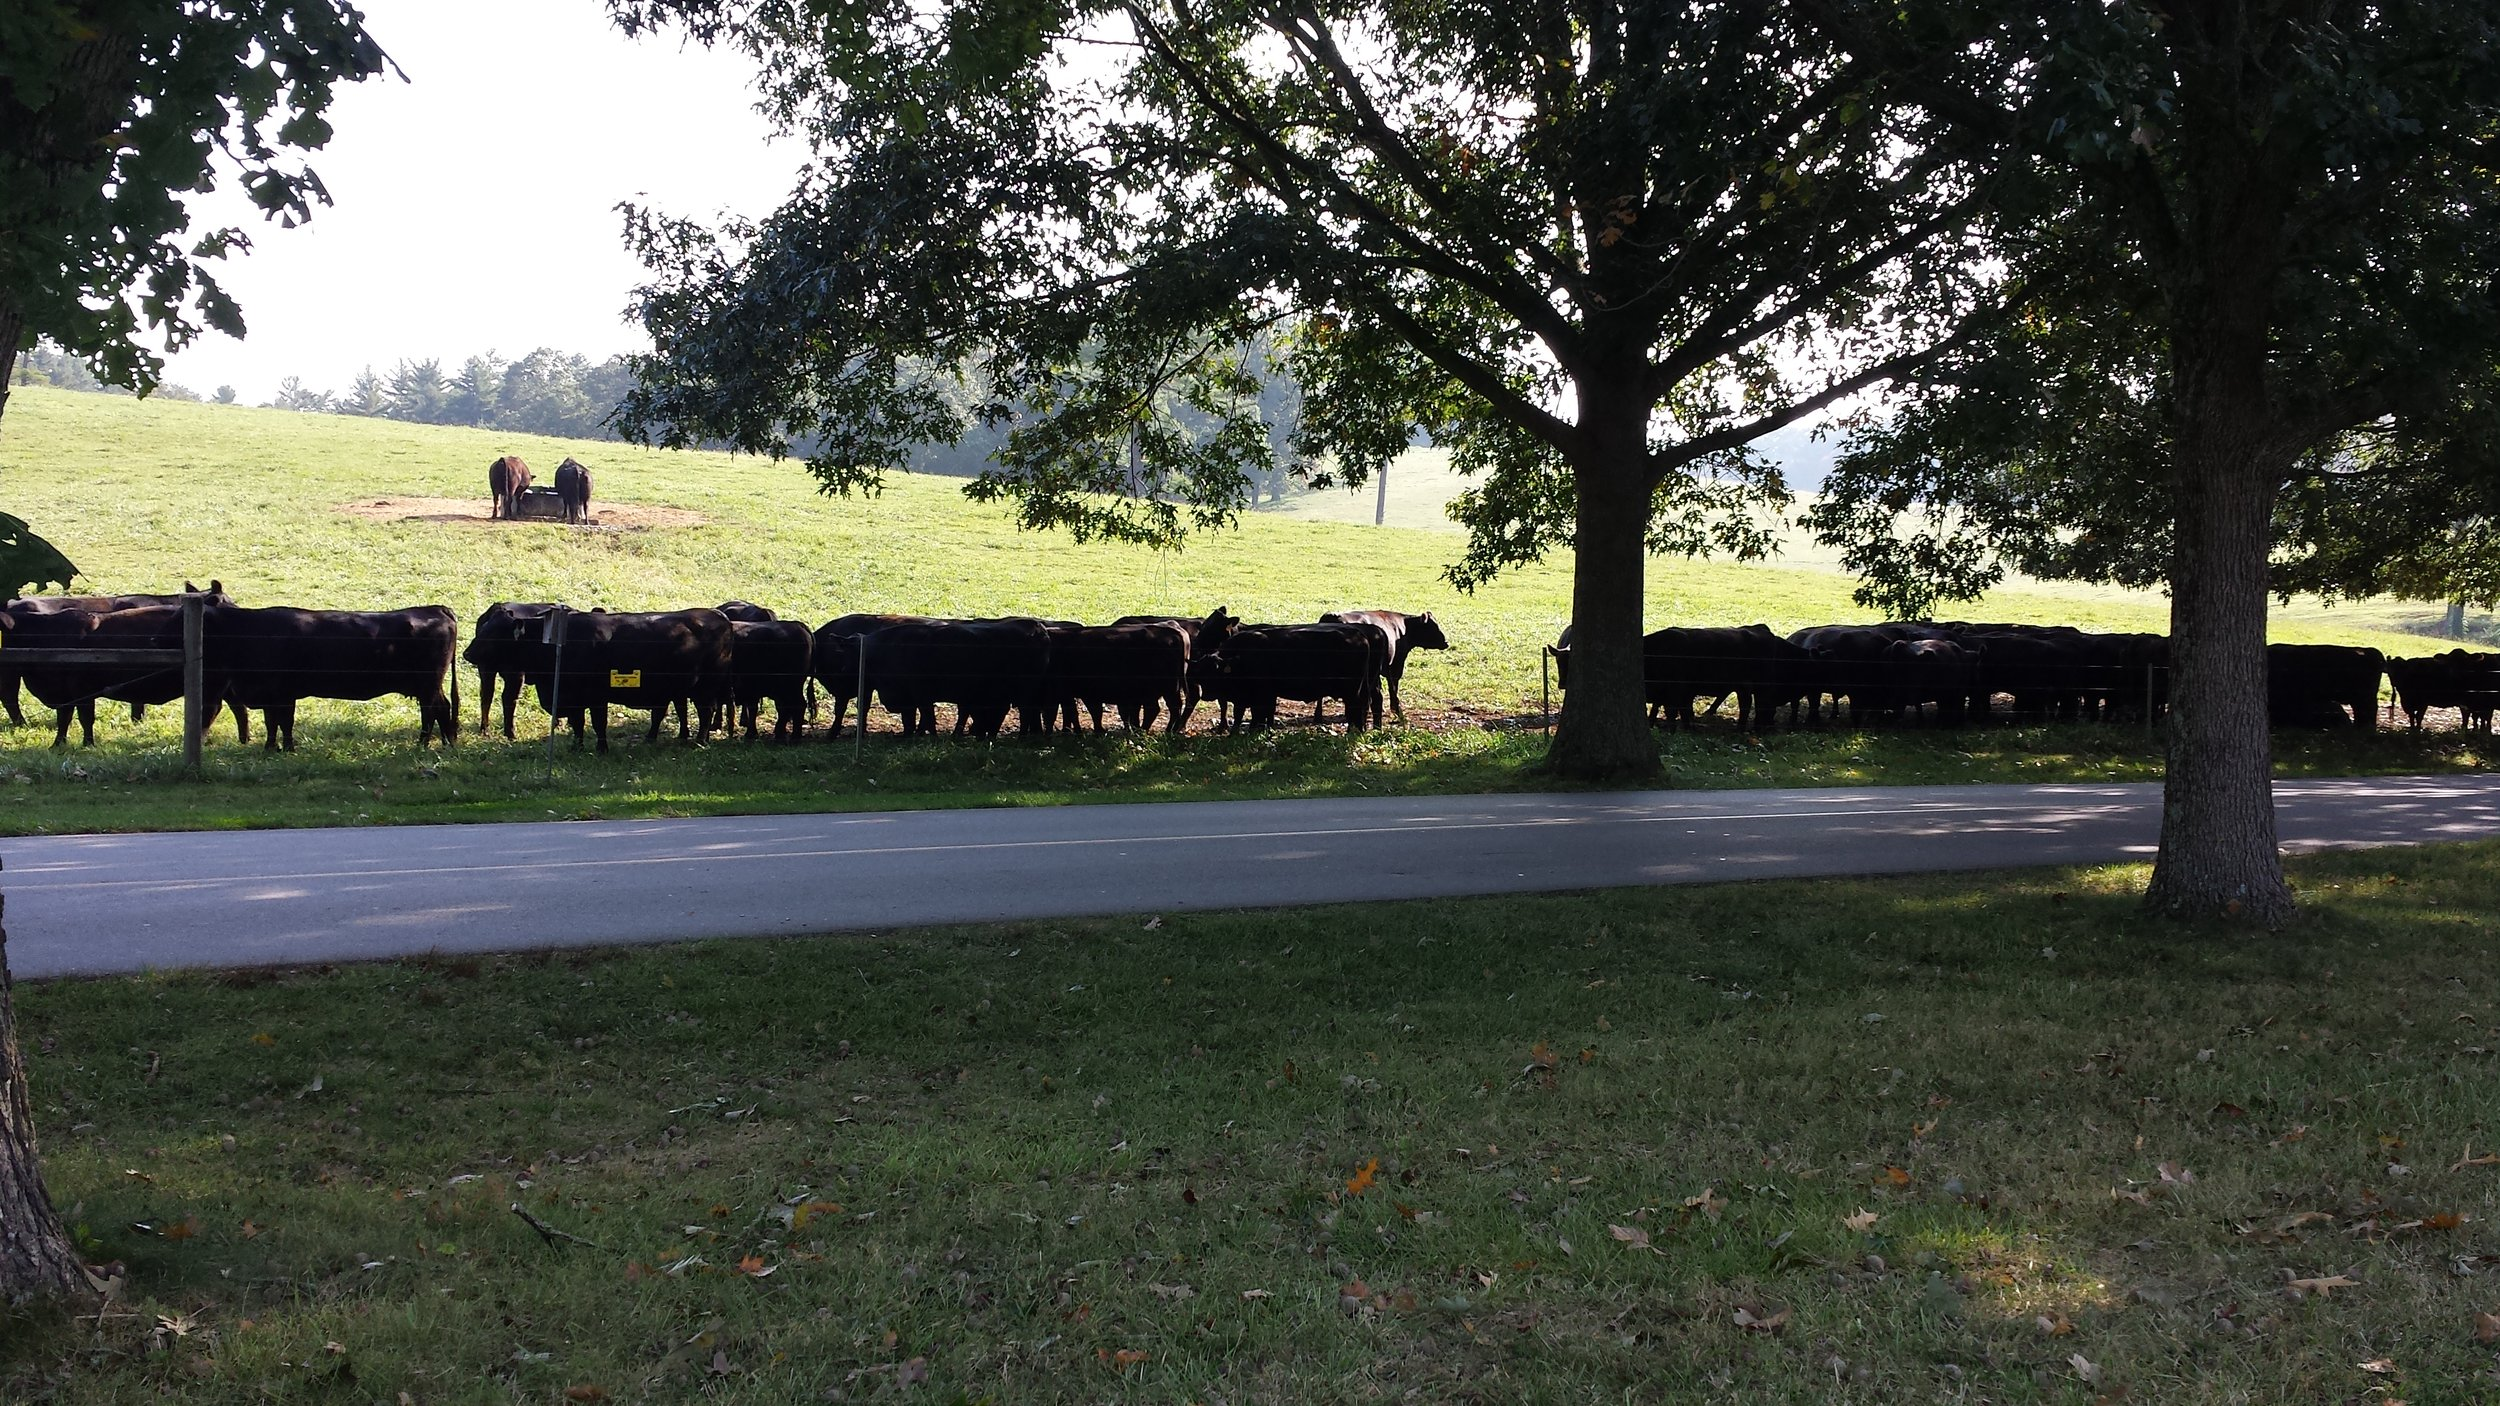 Cattle getting some shade